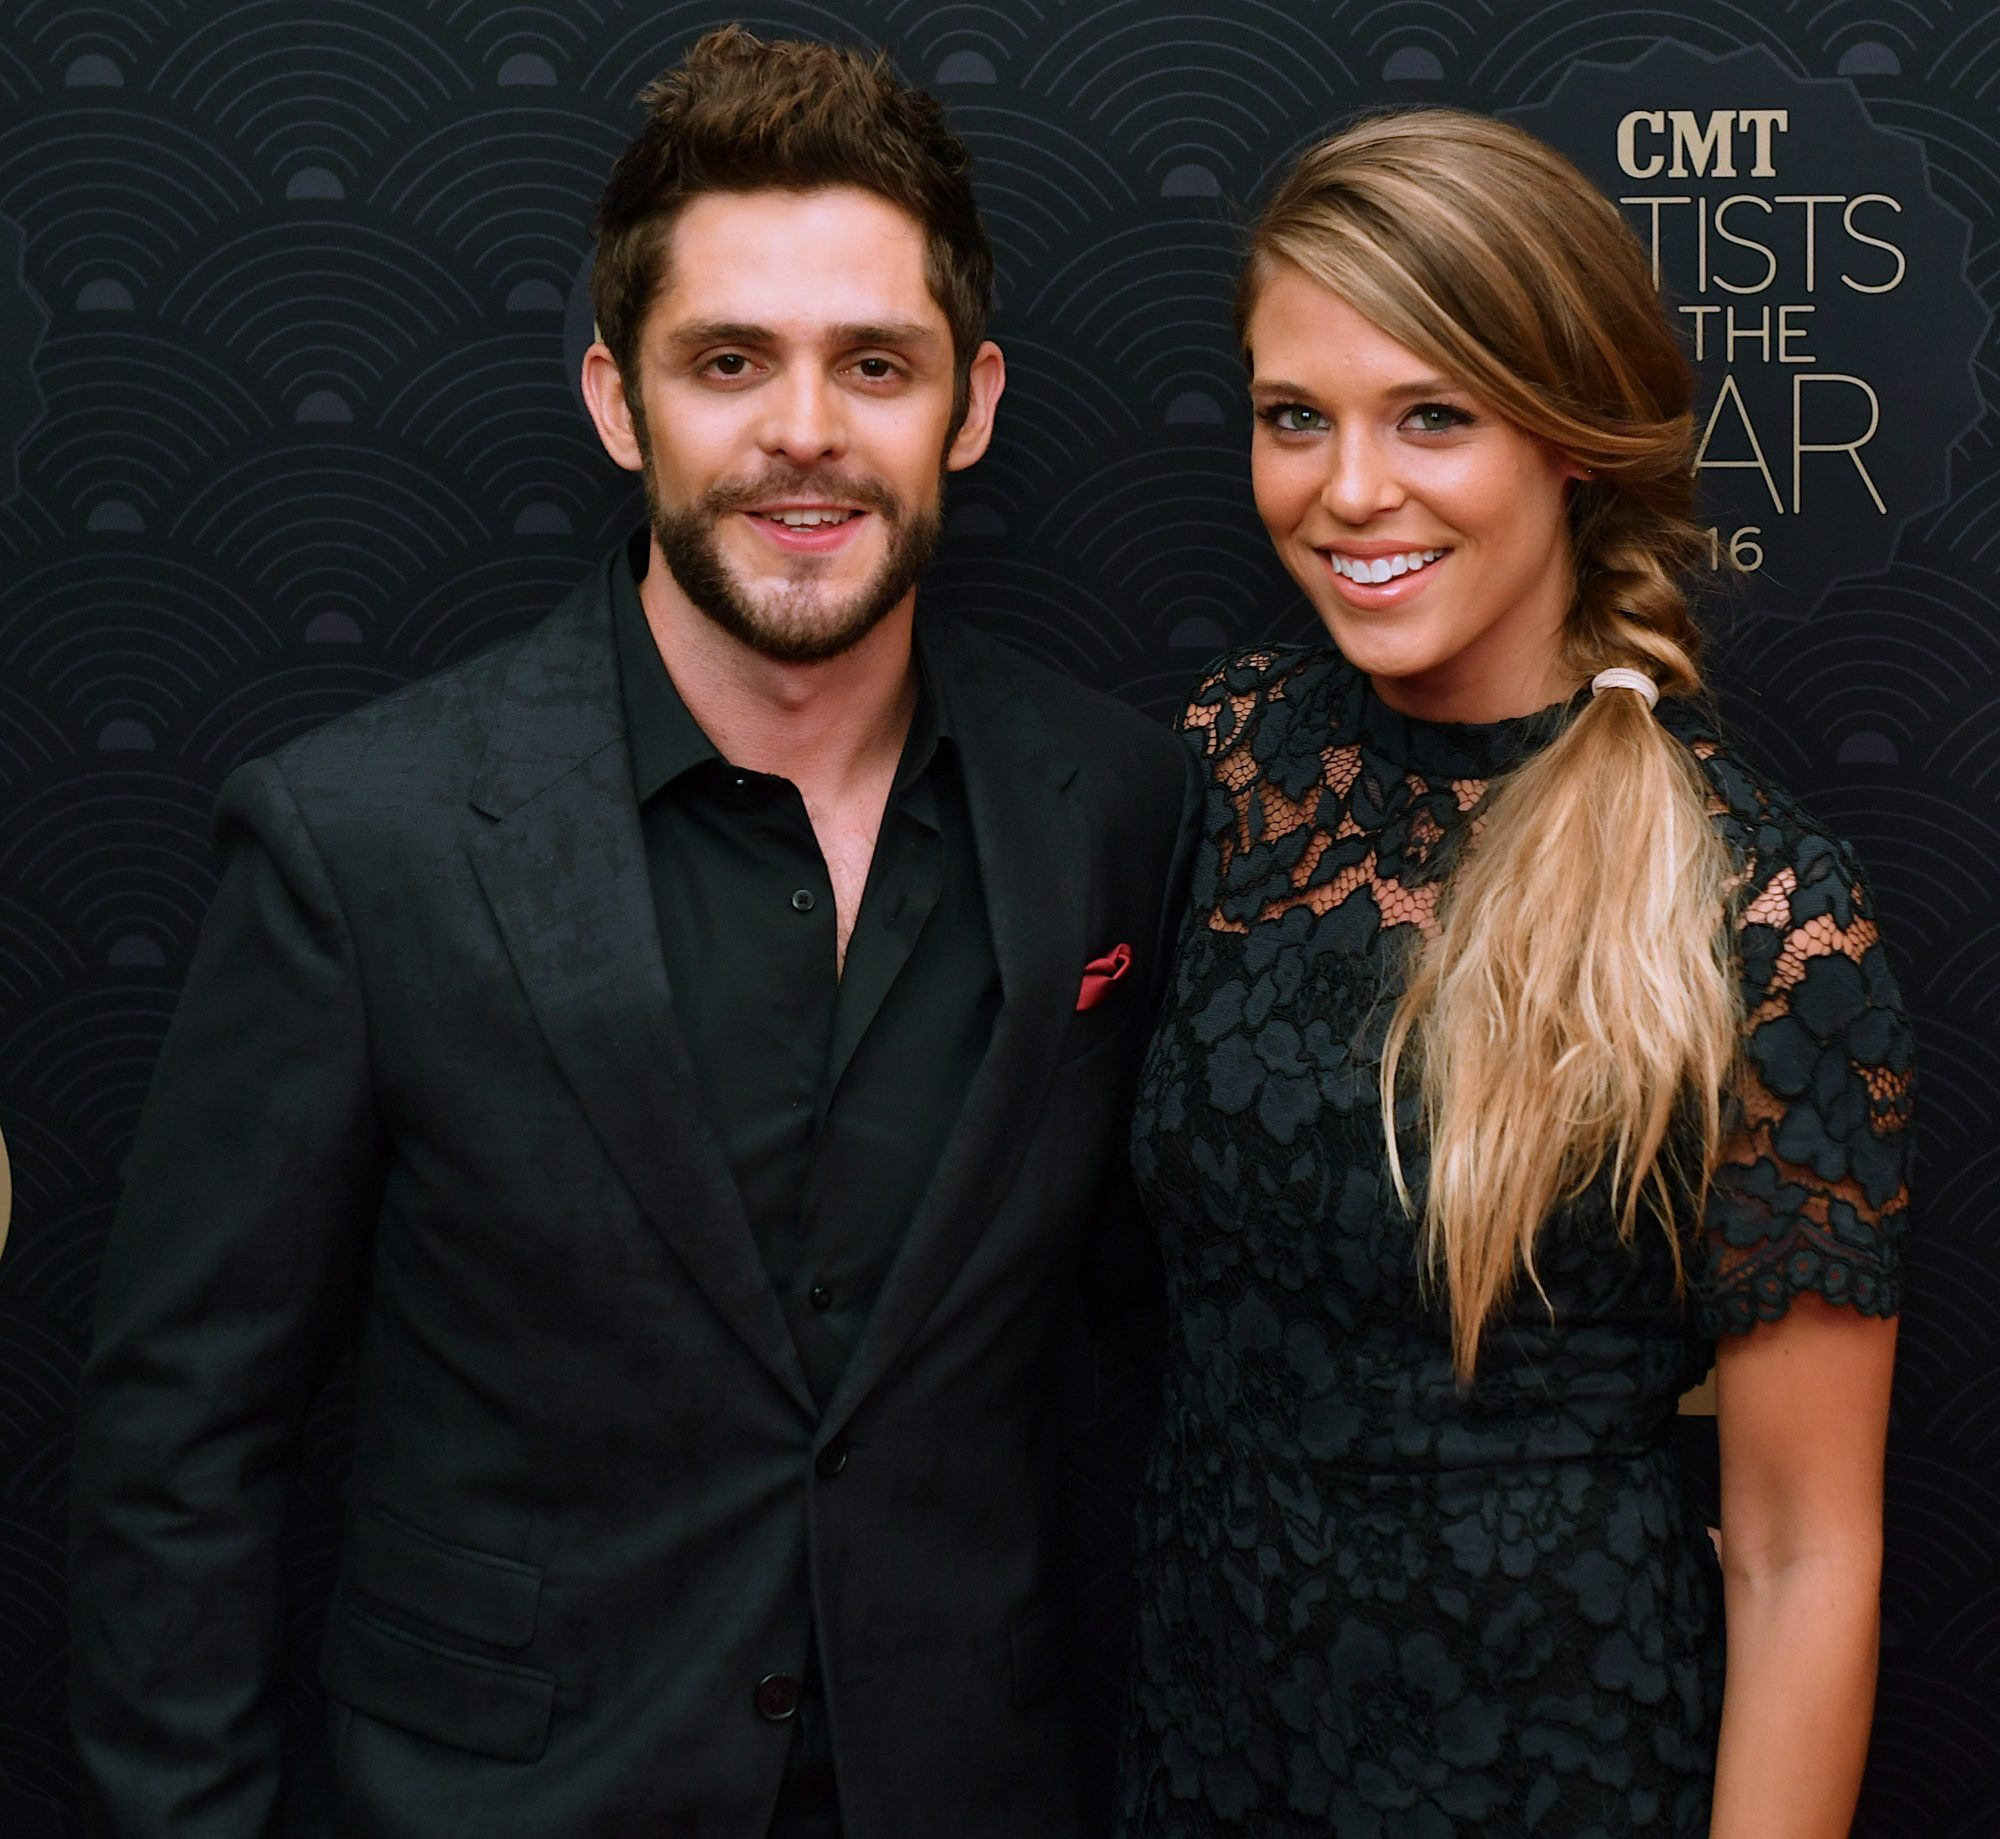 Thomas Rhett and Laura Gregory